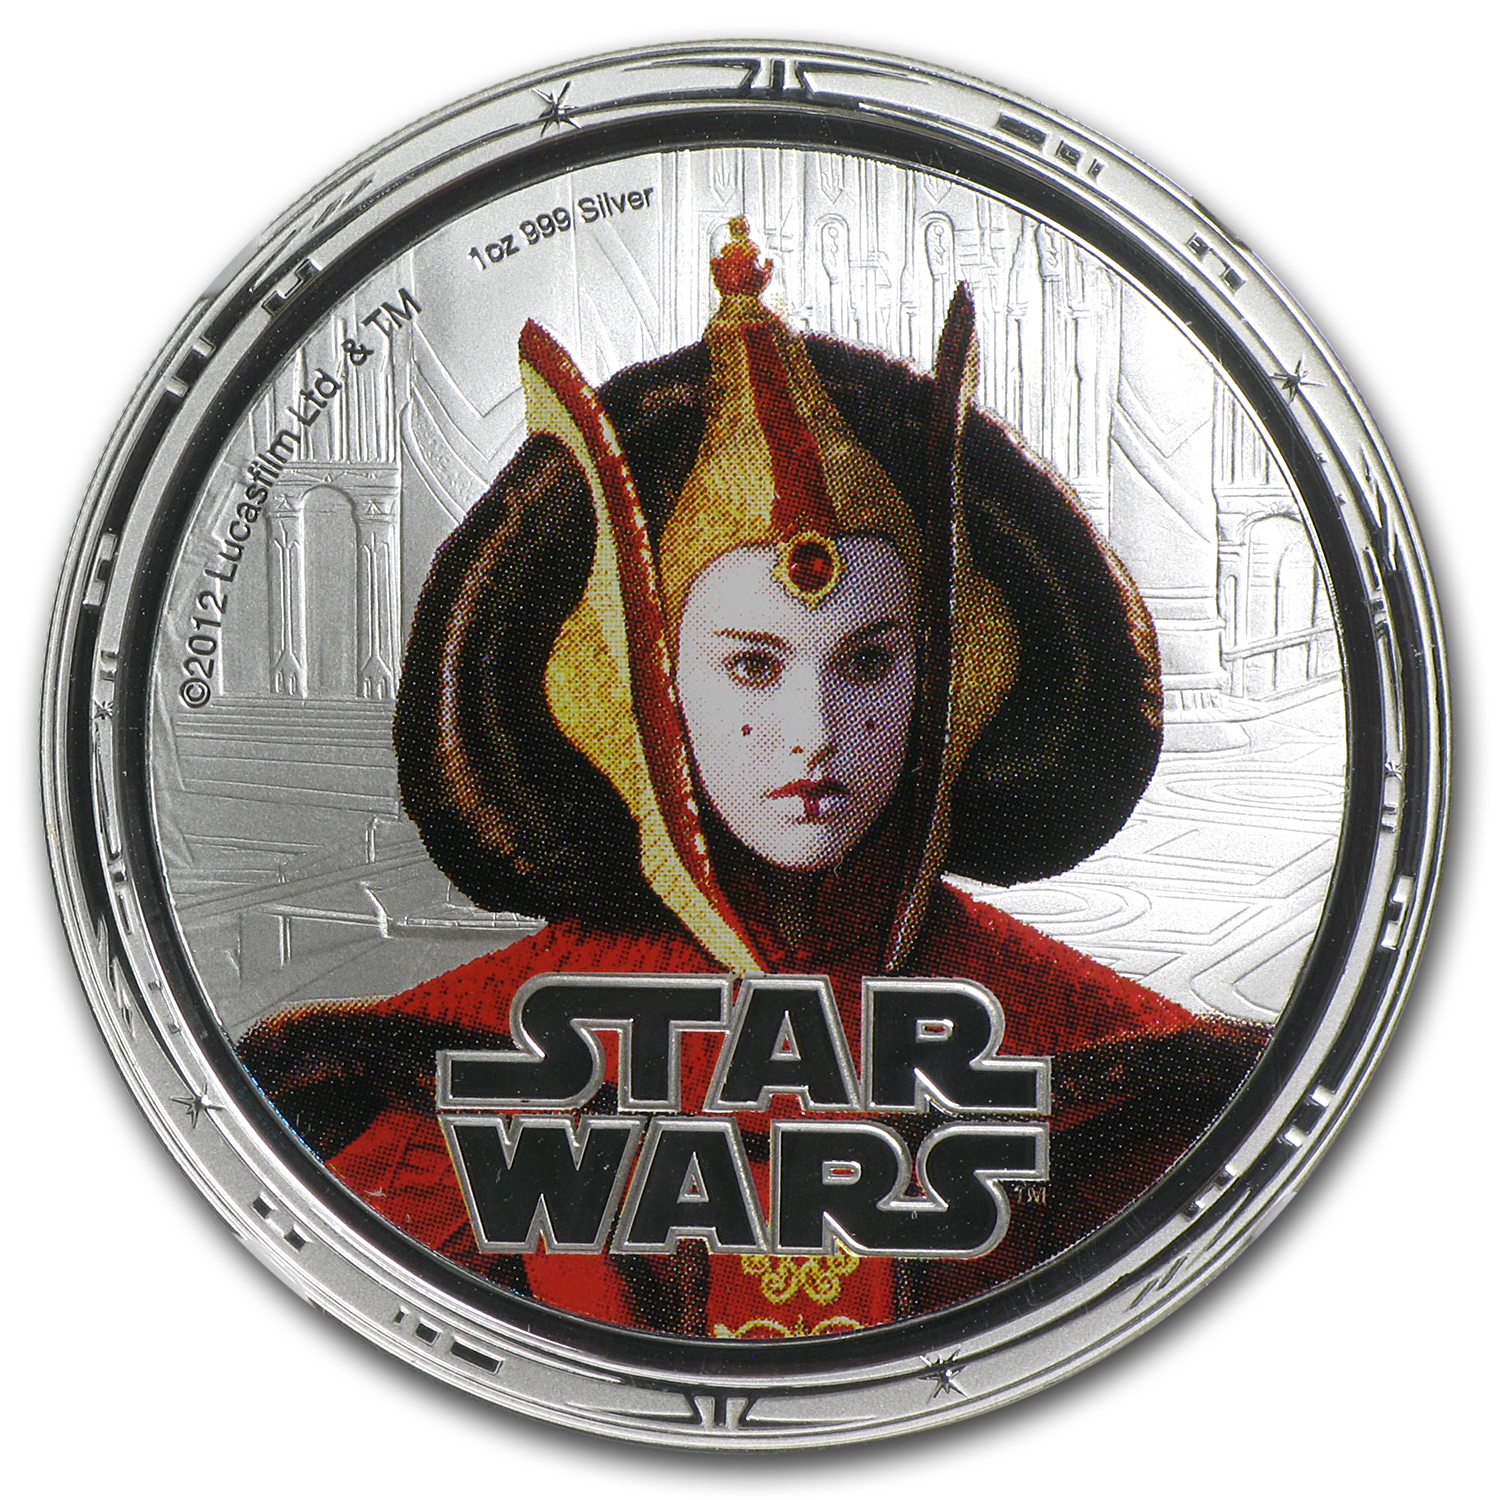 2012 Niue 1 oz Silver $2 Star Wars Queen Amidala PF-69 NGC